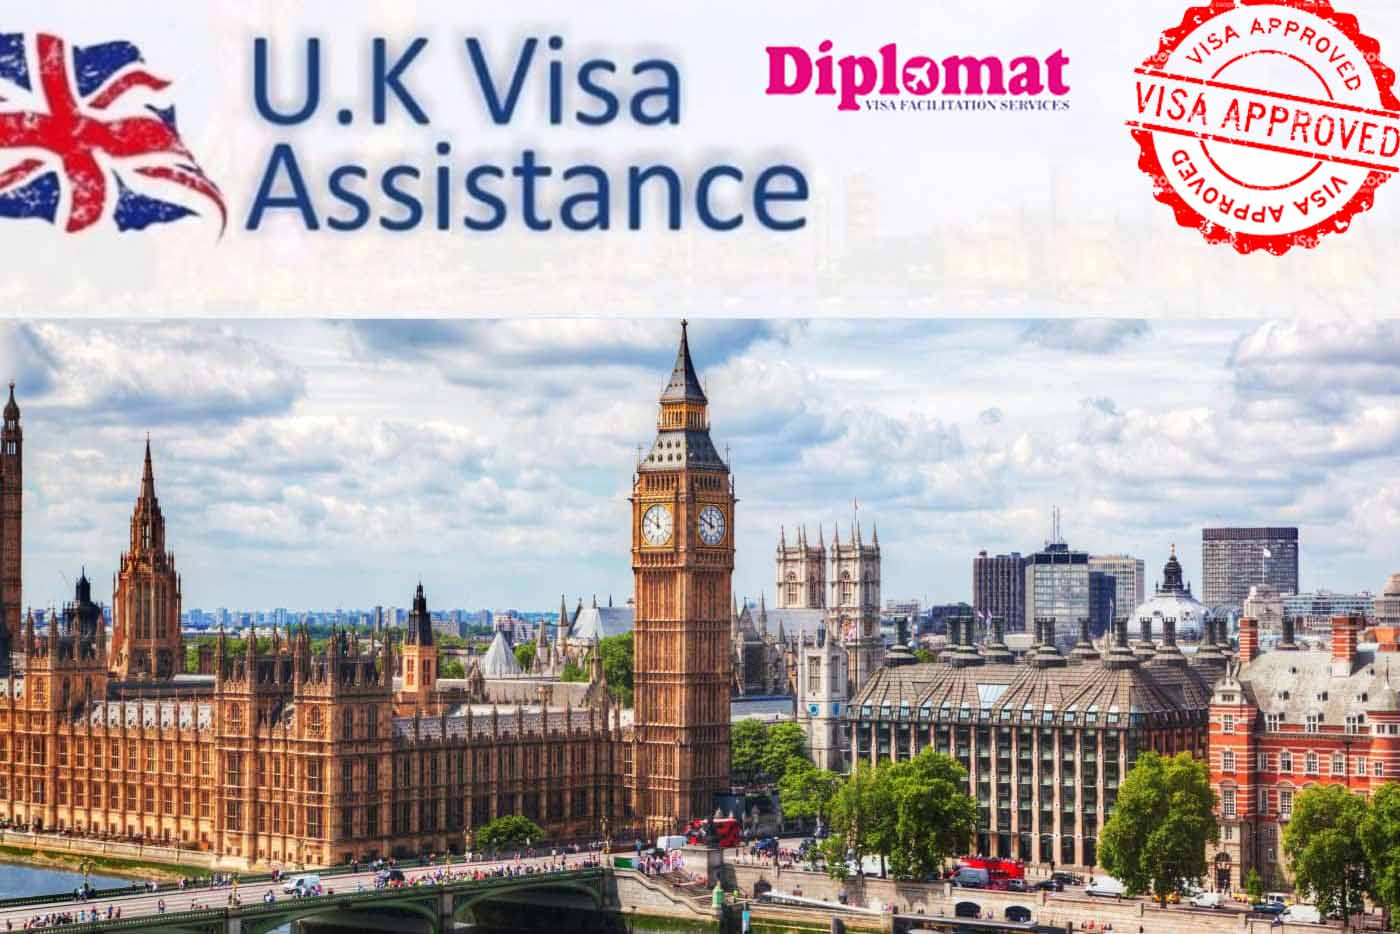 uk visa assistance from Delhi